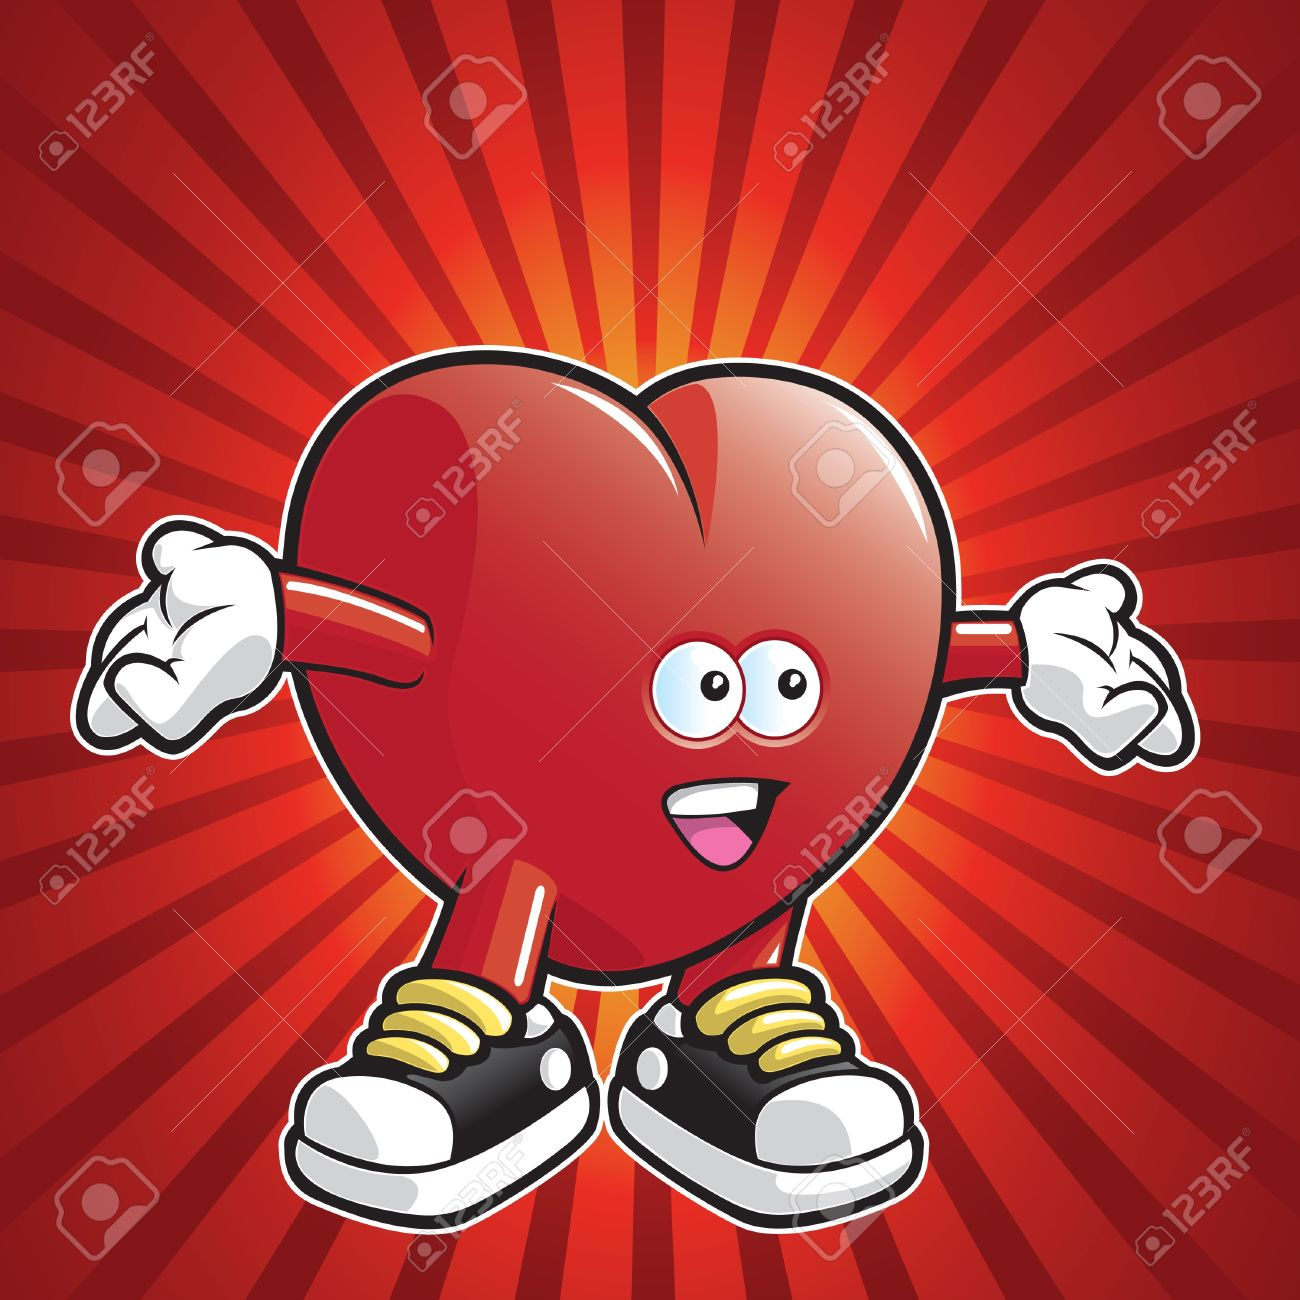 Cartoon Heart Wearing Shoes With Arms Stretched Out Royalty Free.